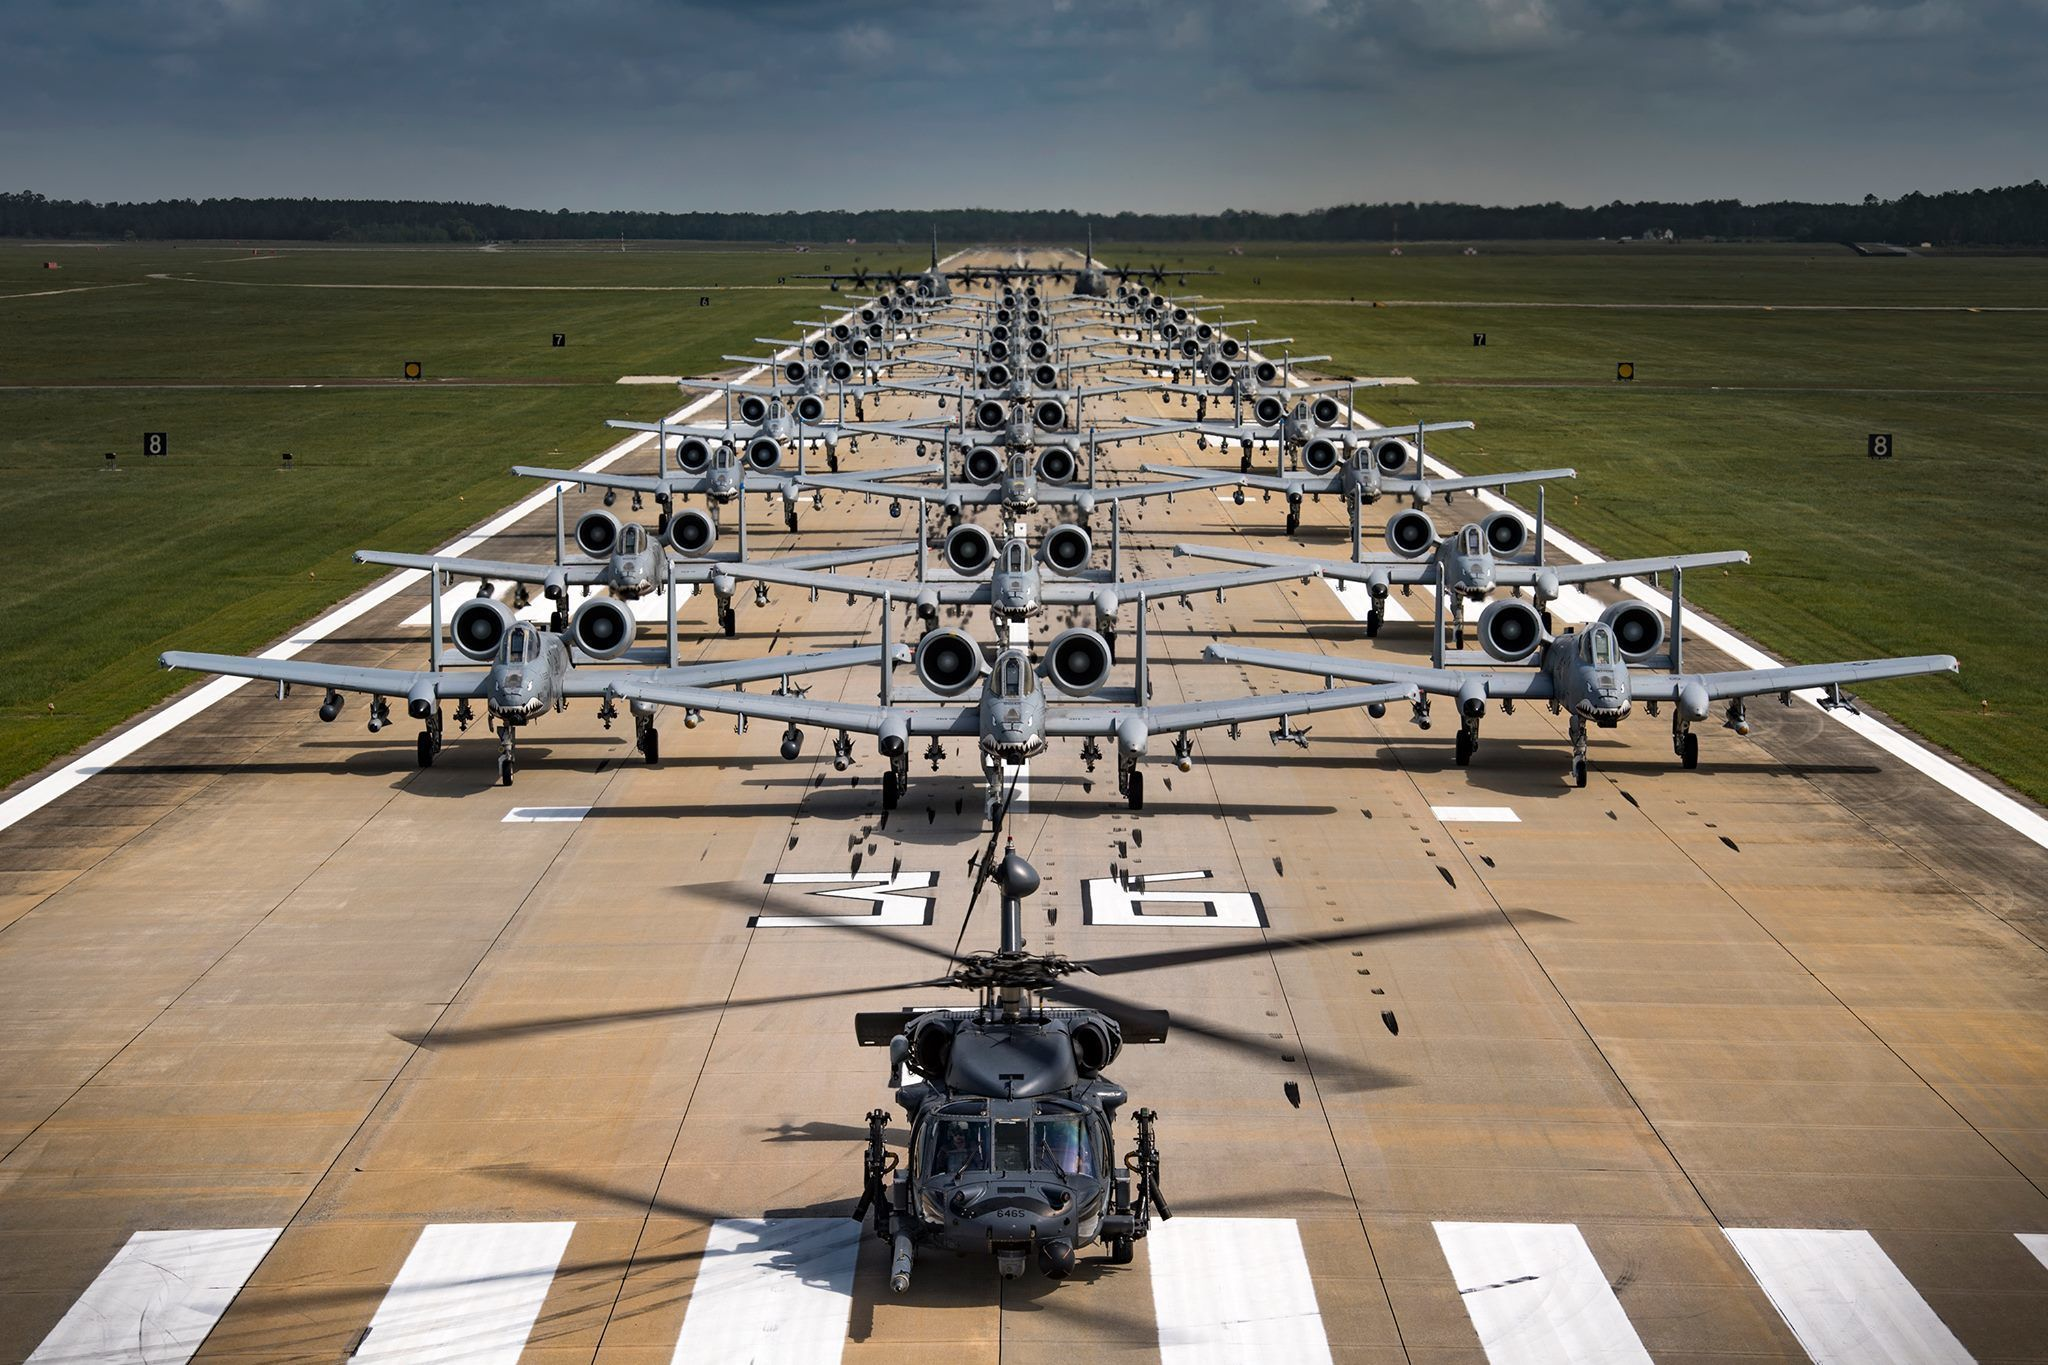 The Air Force Assembled 30 A-10 Warthogs Just to Show That it Can